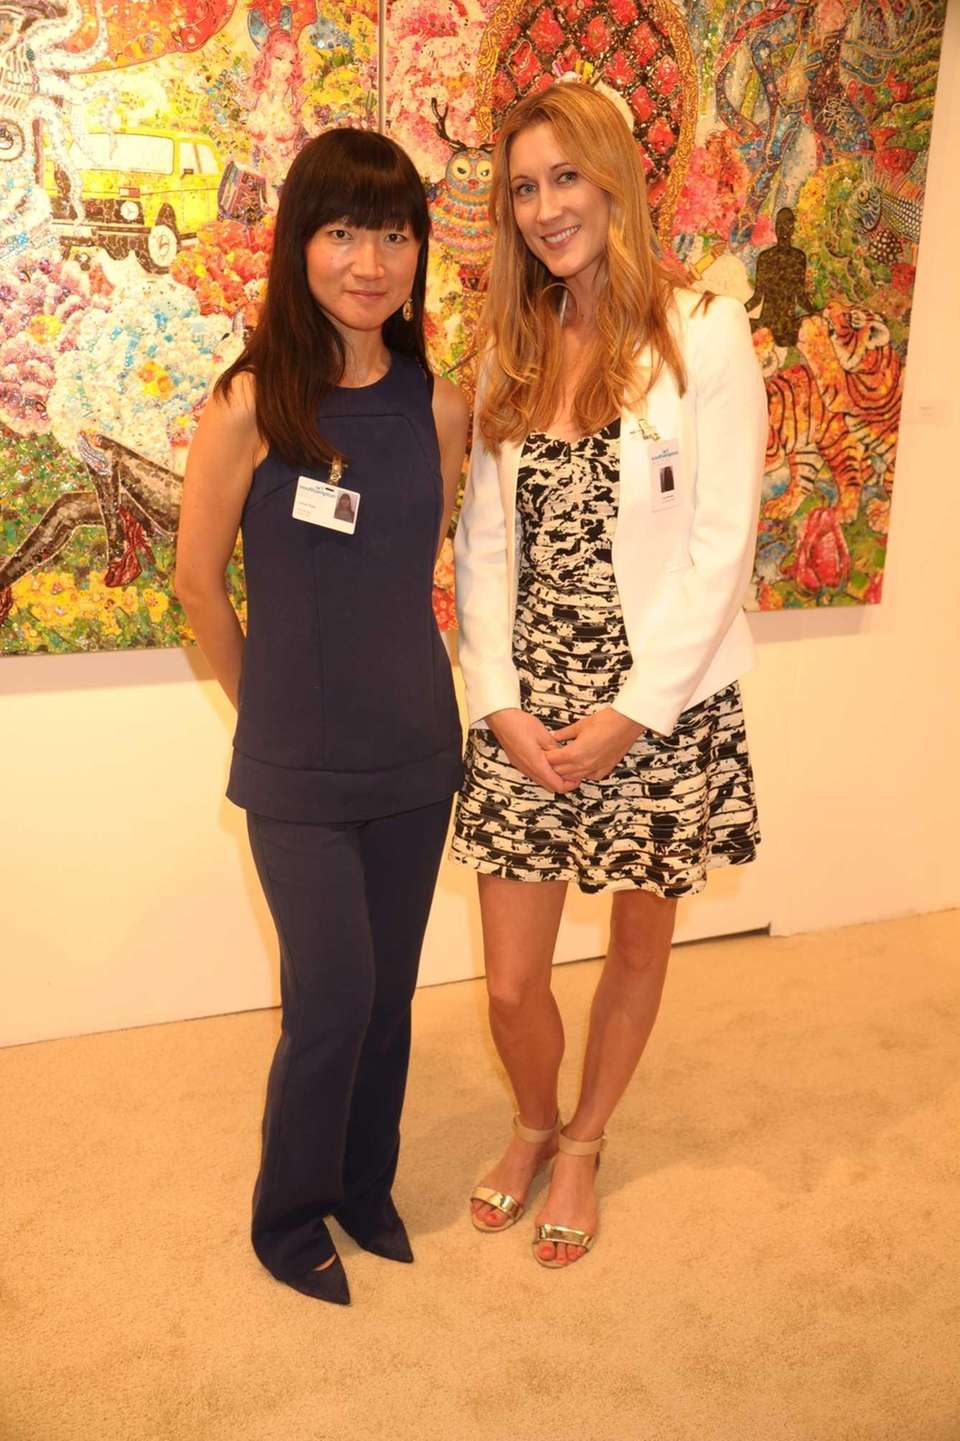 Lexing Chang and Lisa Renau attend the opening